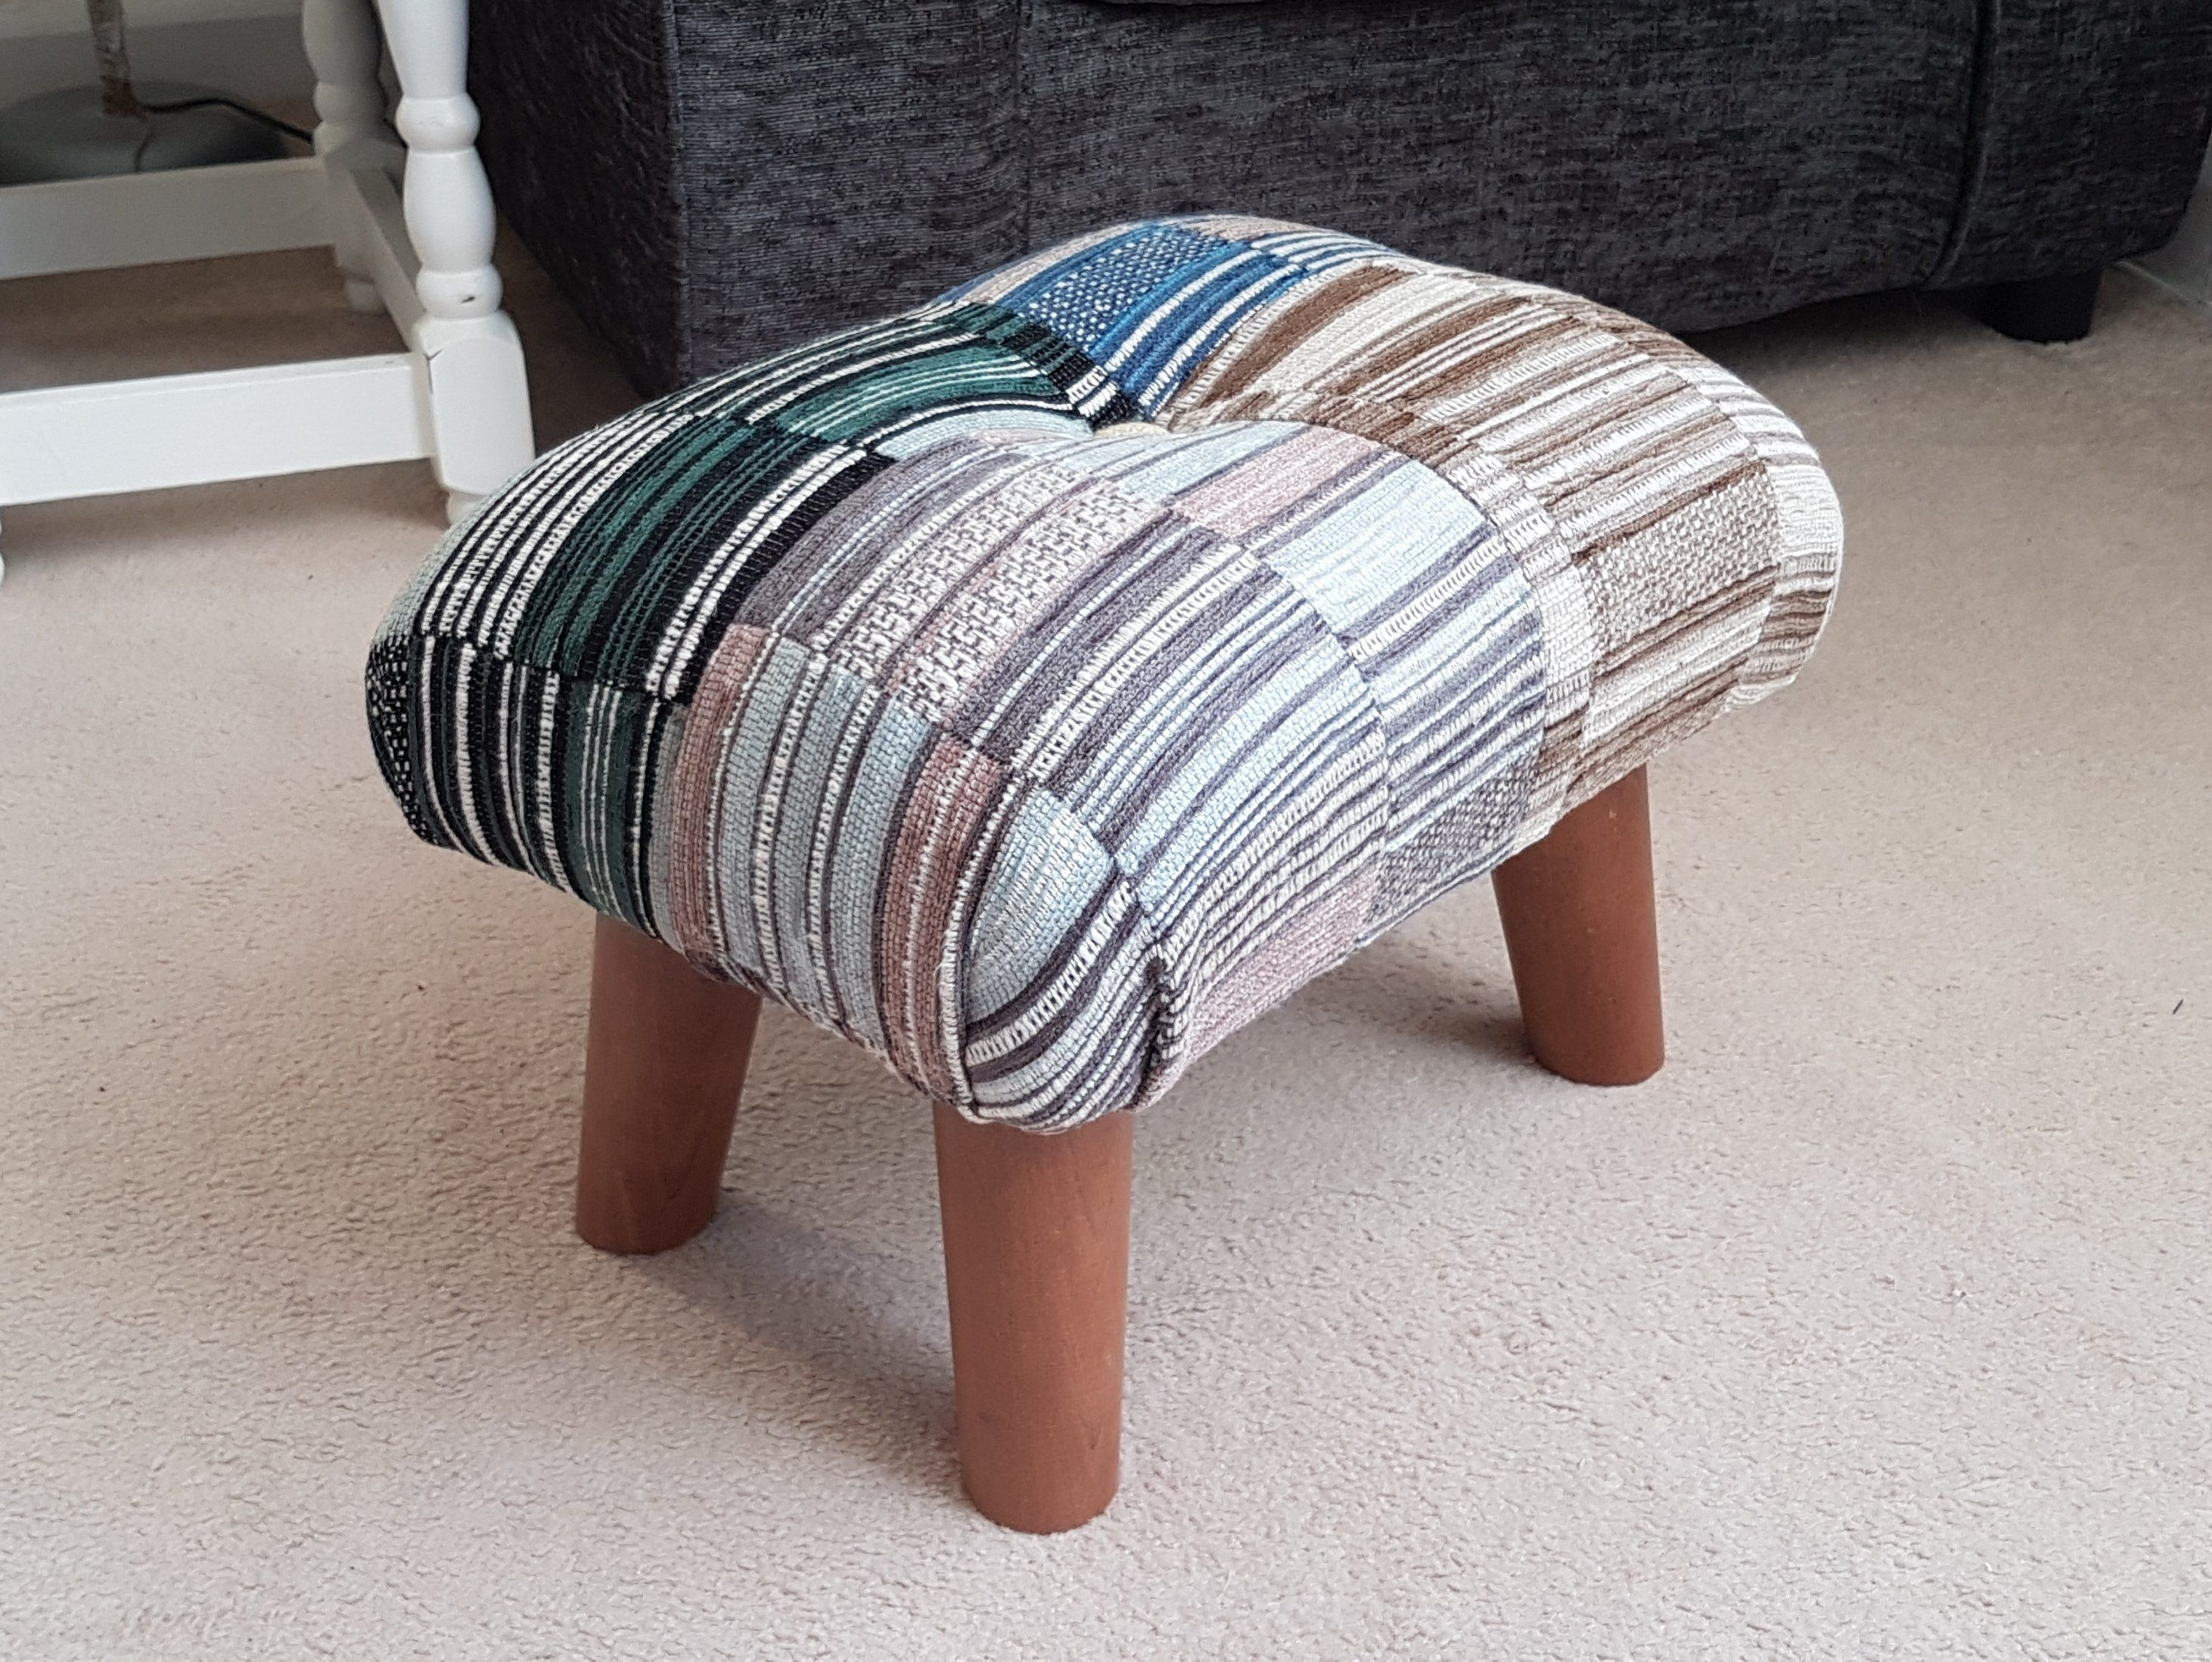 Patchwork Footstool Small Footstool Gift Idea Small Foot Stool Upholstered Foot Stool Handmade Footstool